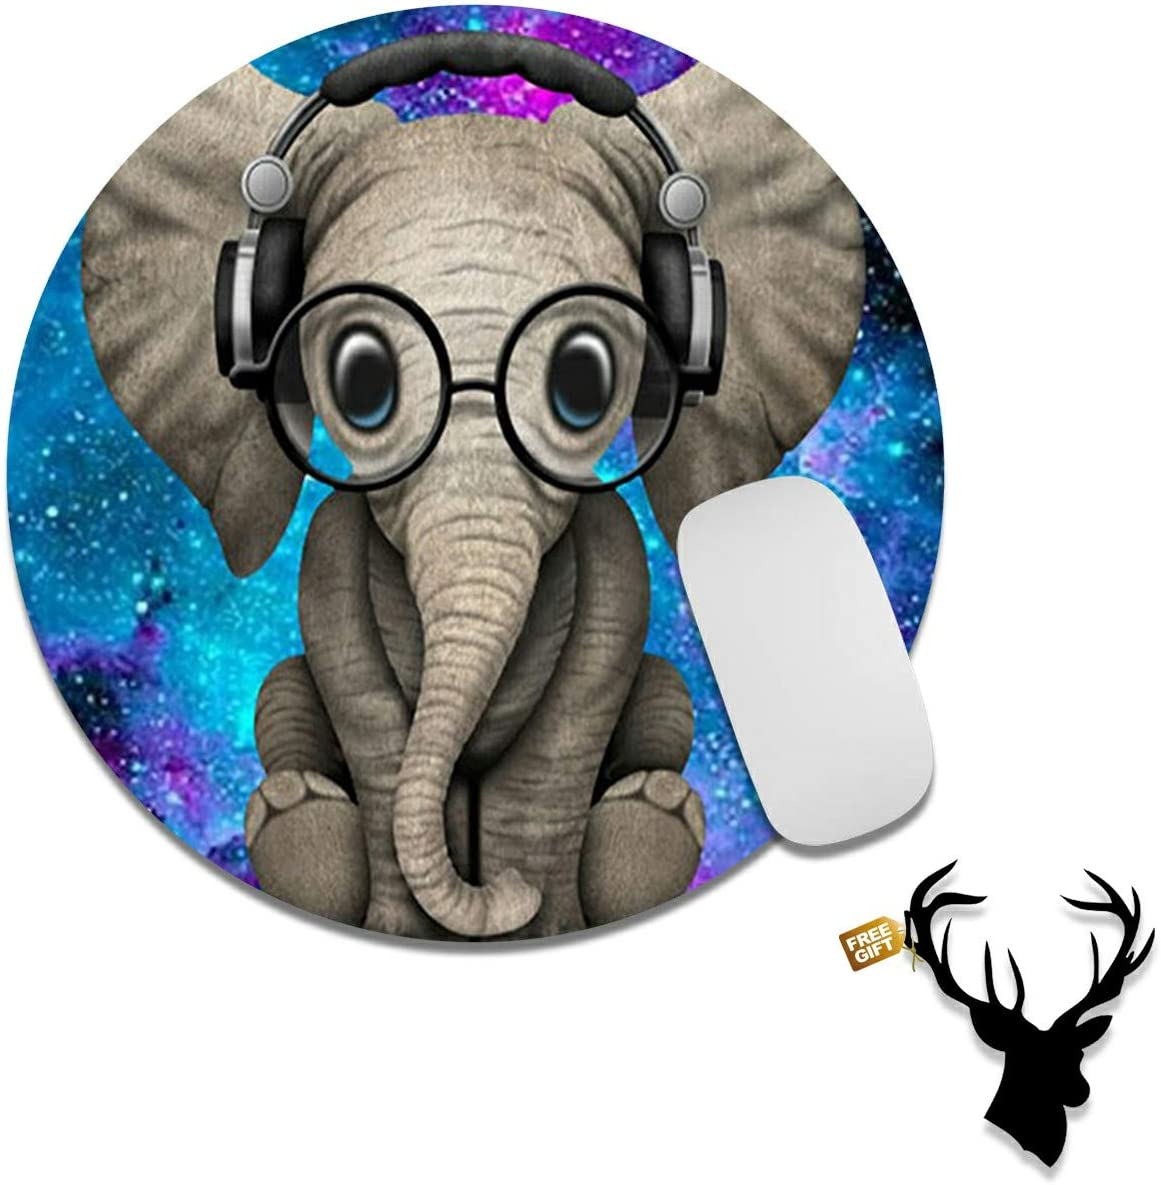 Gaming Mouse Pad Mat Elephant in Blue Galaxy Mousepads with Cute Stickers Non-Slip Rubber Base Round Mouse Pads for Laptop Compute Working Home Office Accessories